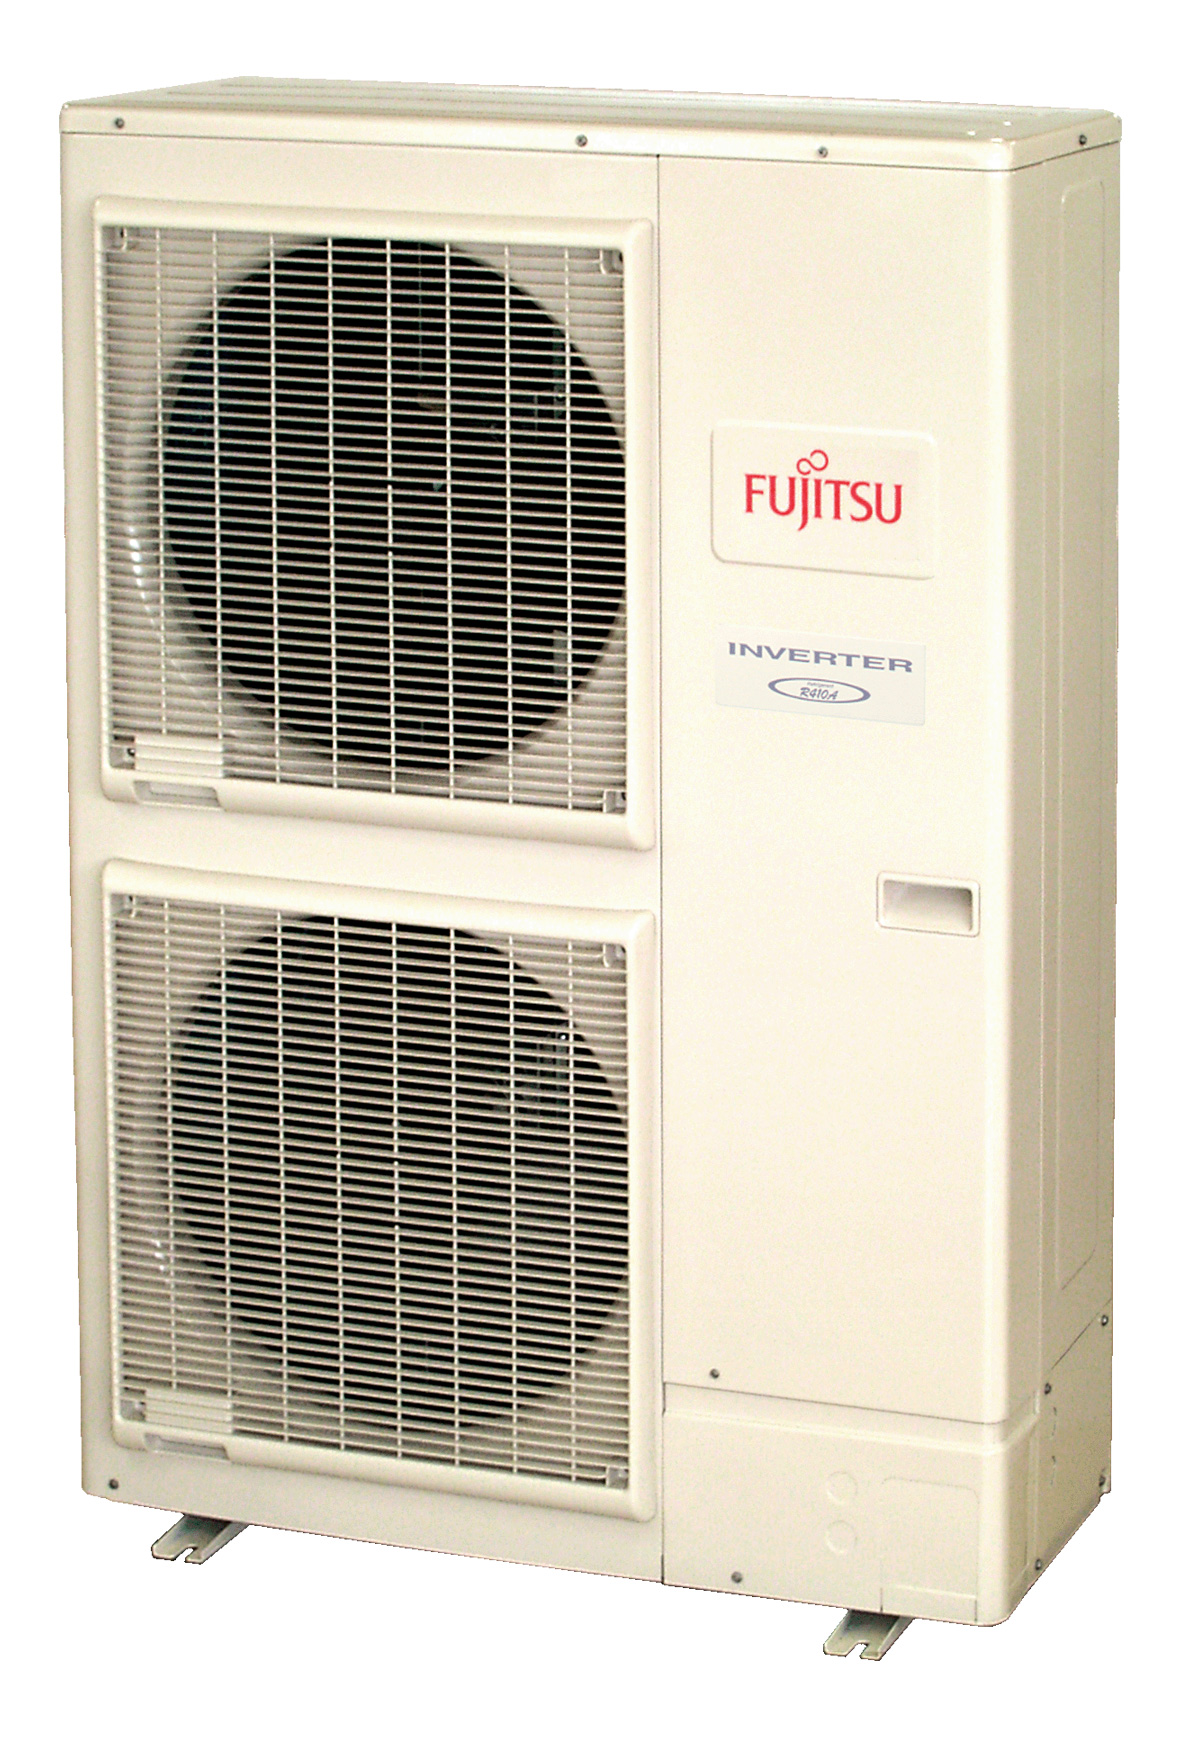 Air Conditioning RLBS Building Facilities Ltd #967D35